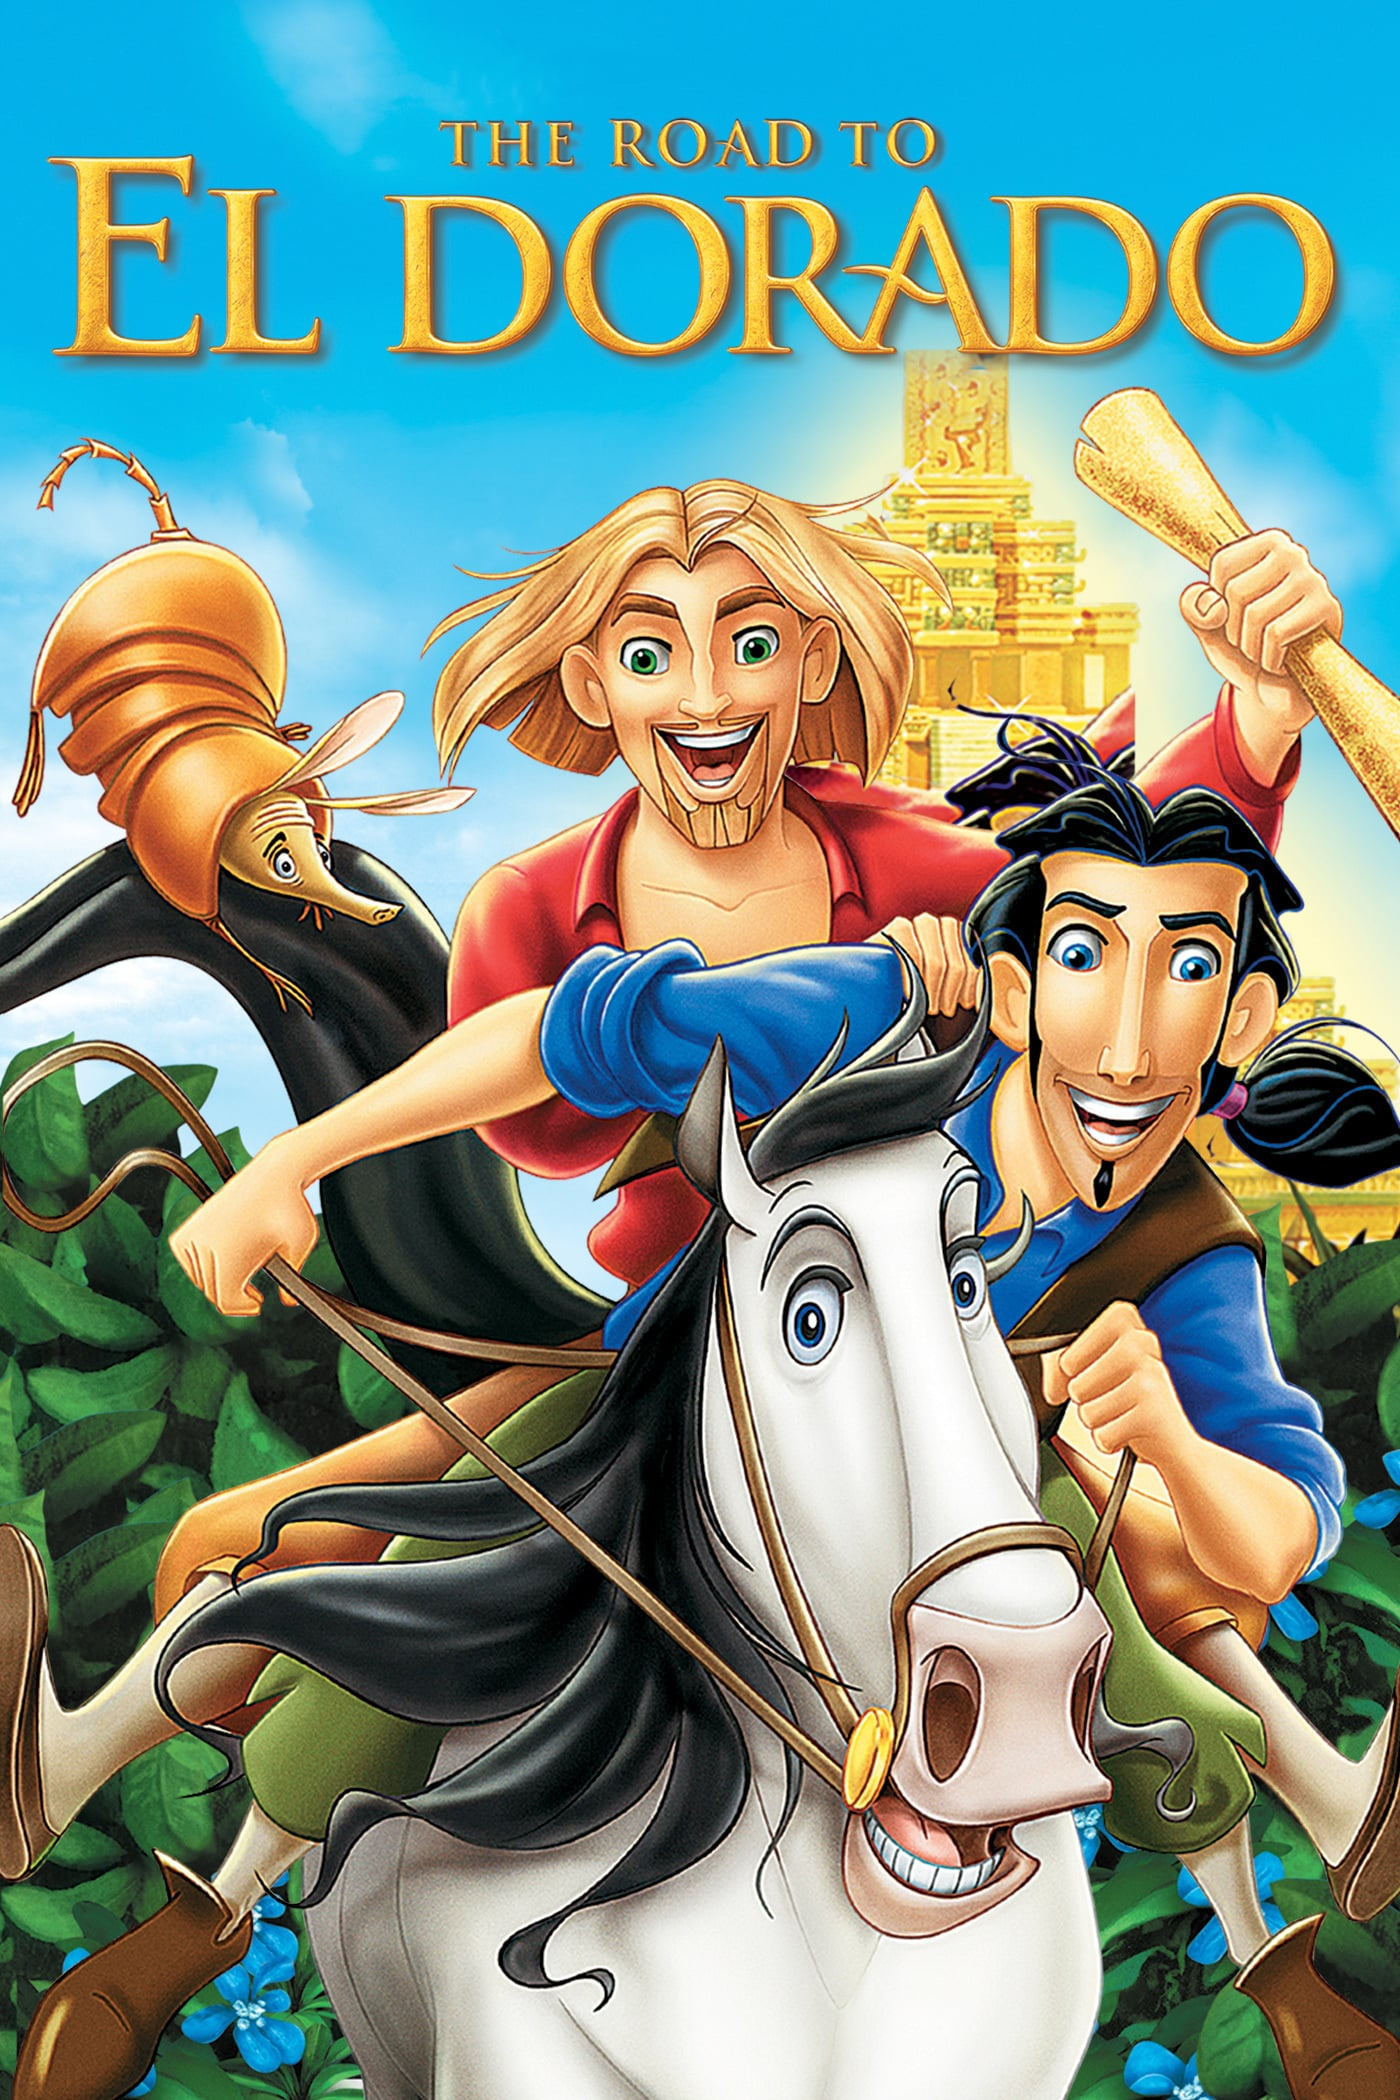 فيلم The Road to El Dorado 2000 مترجم